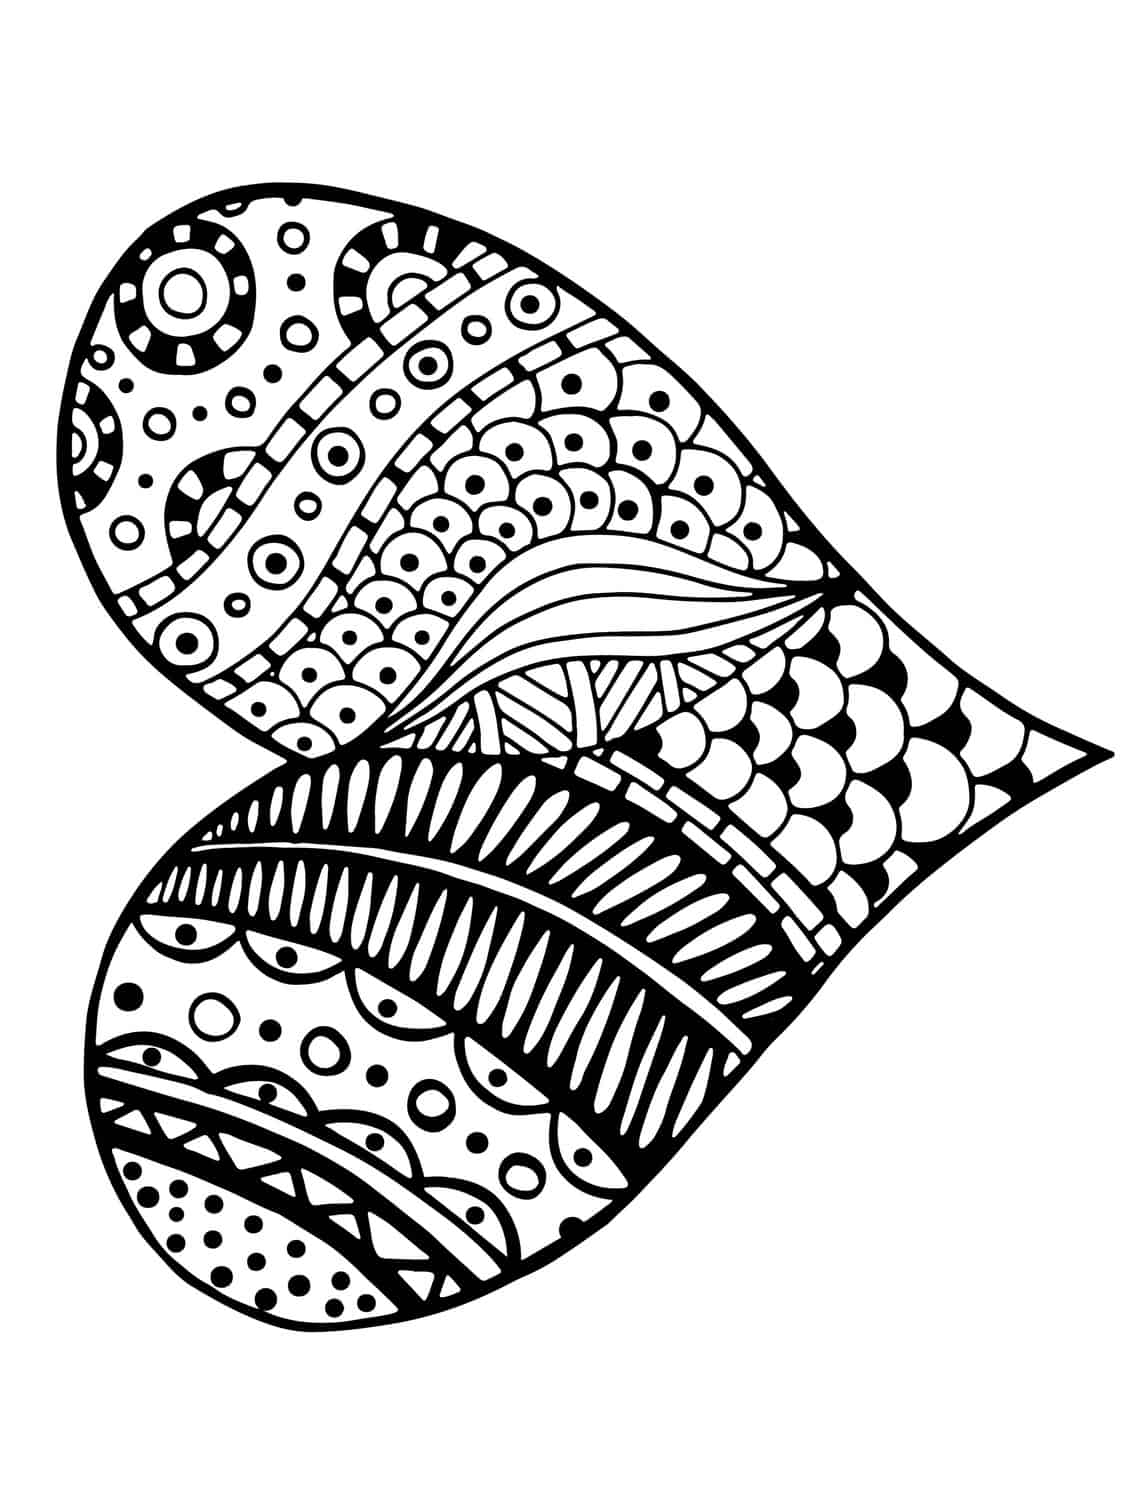 Love is printable coloring pages -  Love Printable Adult Coloring Page Download